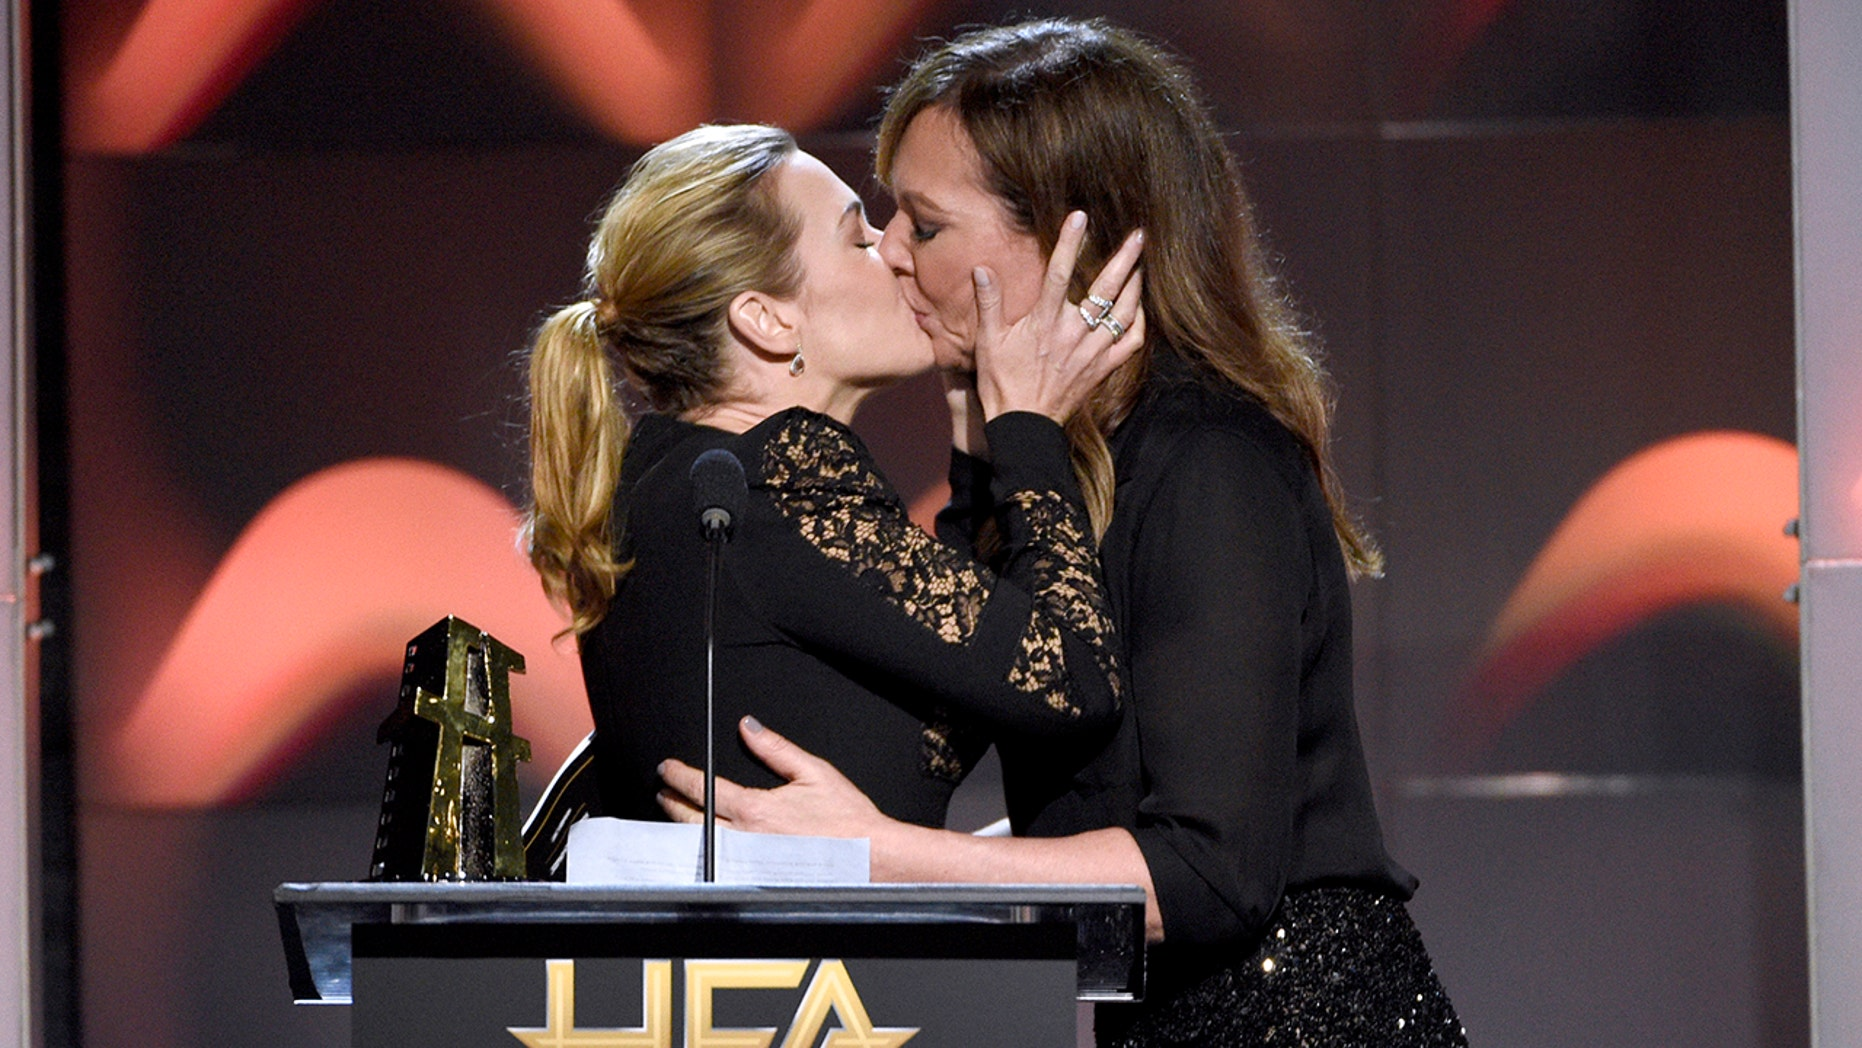 """Allison Janney, right, kisses Kate Winslet, winner of the Hollywood actress award for """"Wonder Wheel"""" at the Hollywood Film Awards at the Beverly Hilton hotel on Sunday, Nov. 5, 2017, in Beverly Hills, Calif. (Photo by Chris Pizzello/Invision/AP)"""